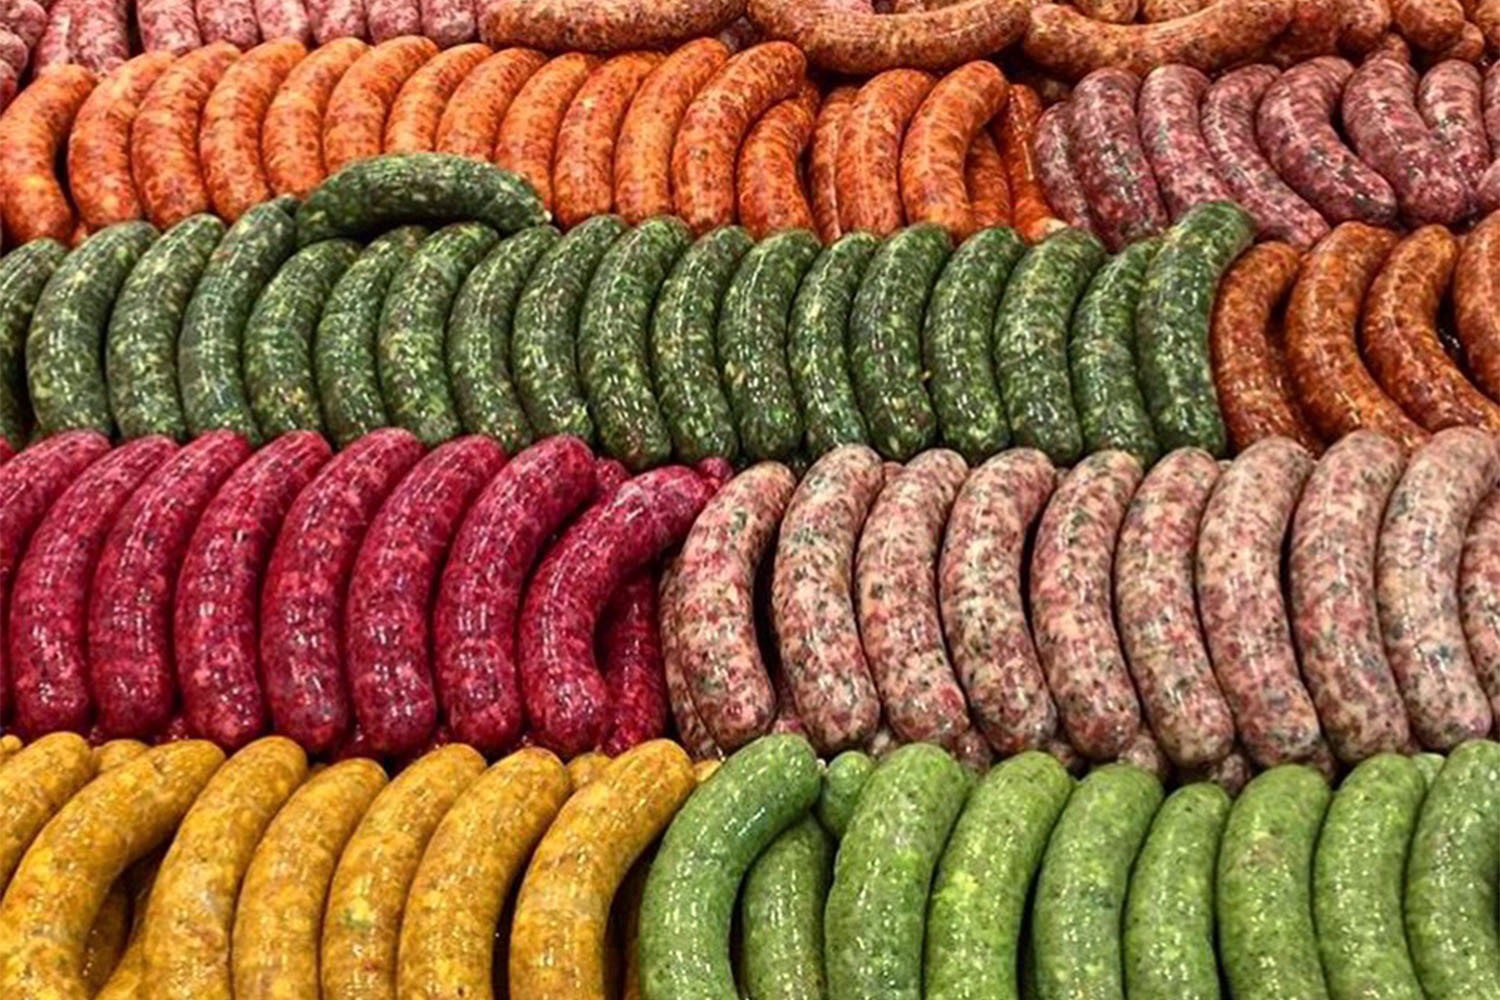 Seemore's stuffed sausages are filled with fresh vegetables